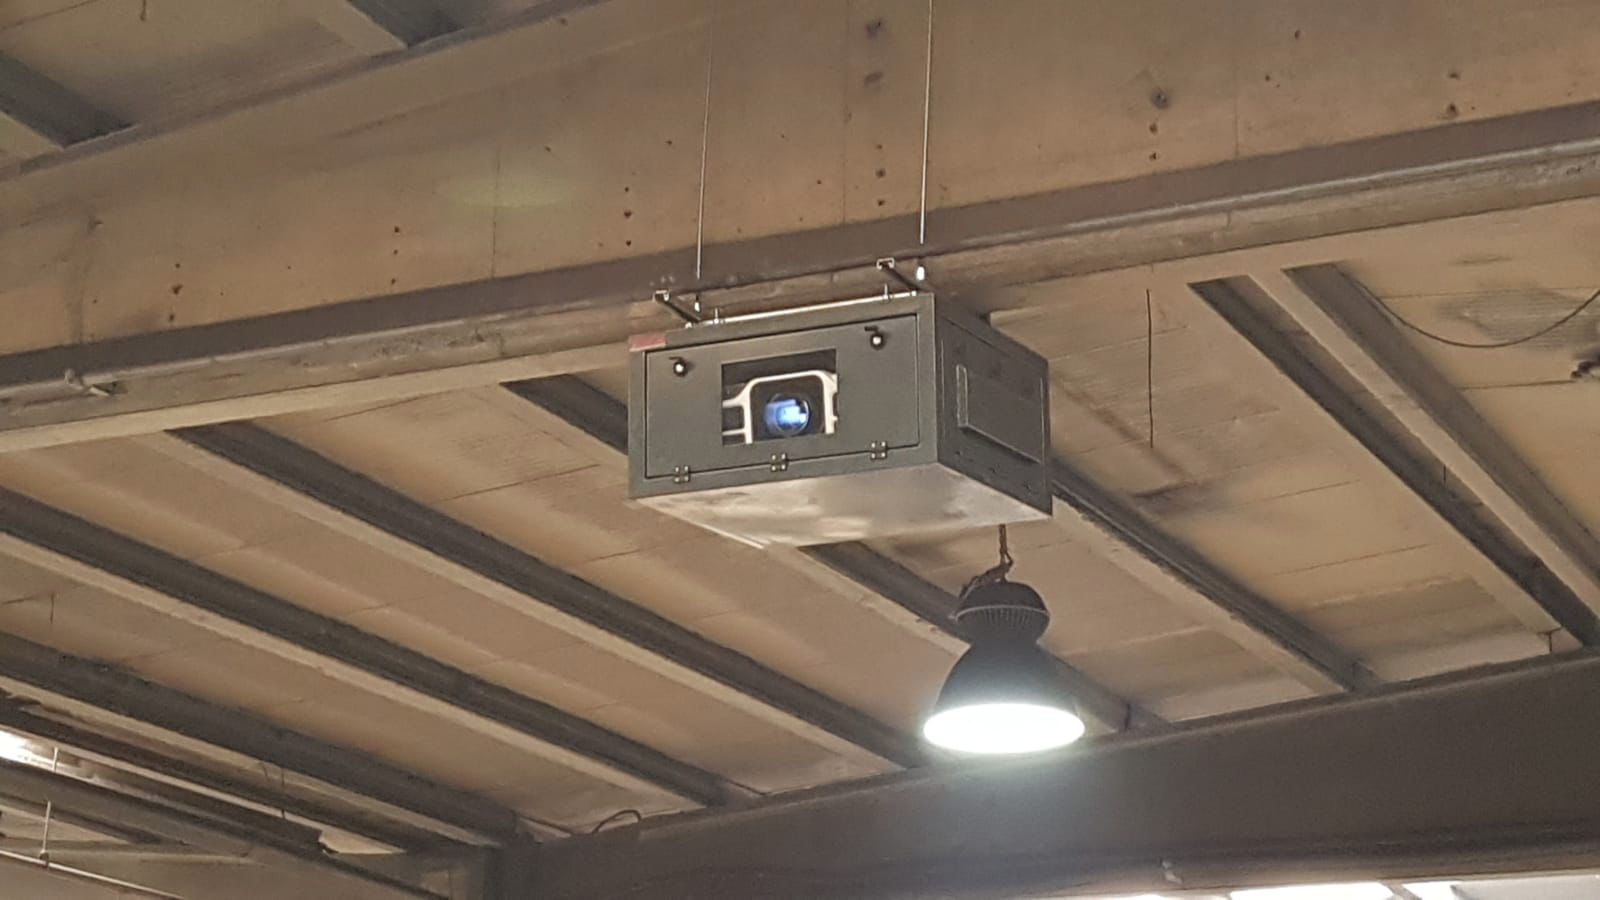 Projector in enclosures in high humidity or very cold warehouses